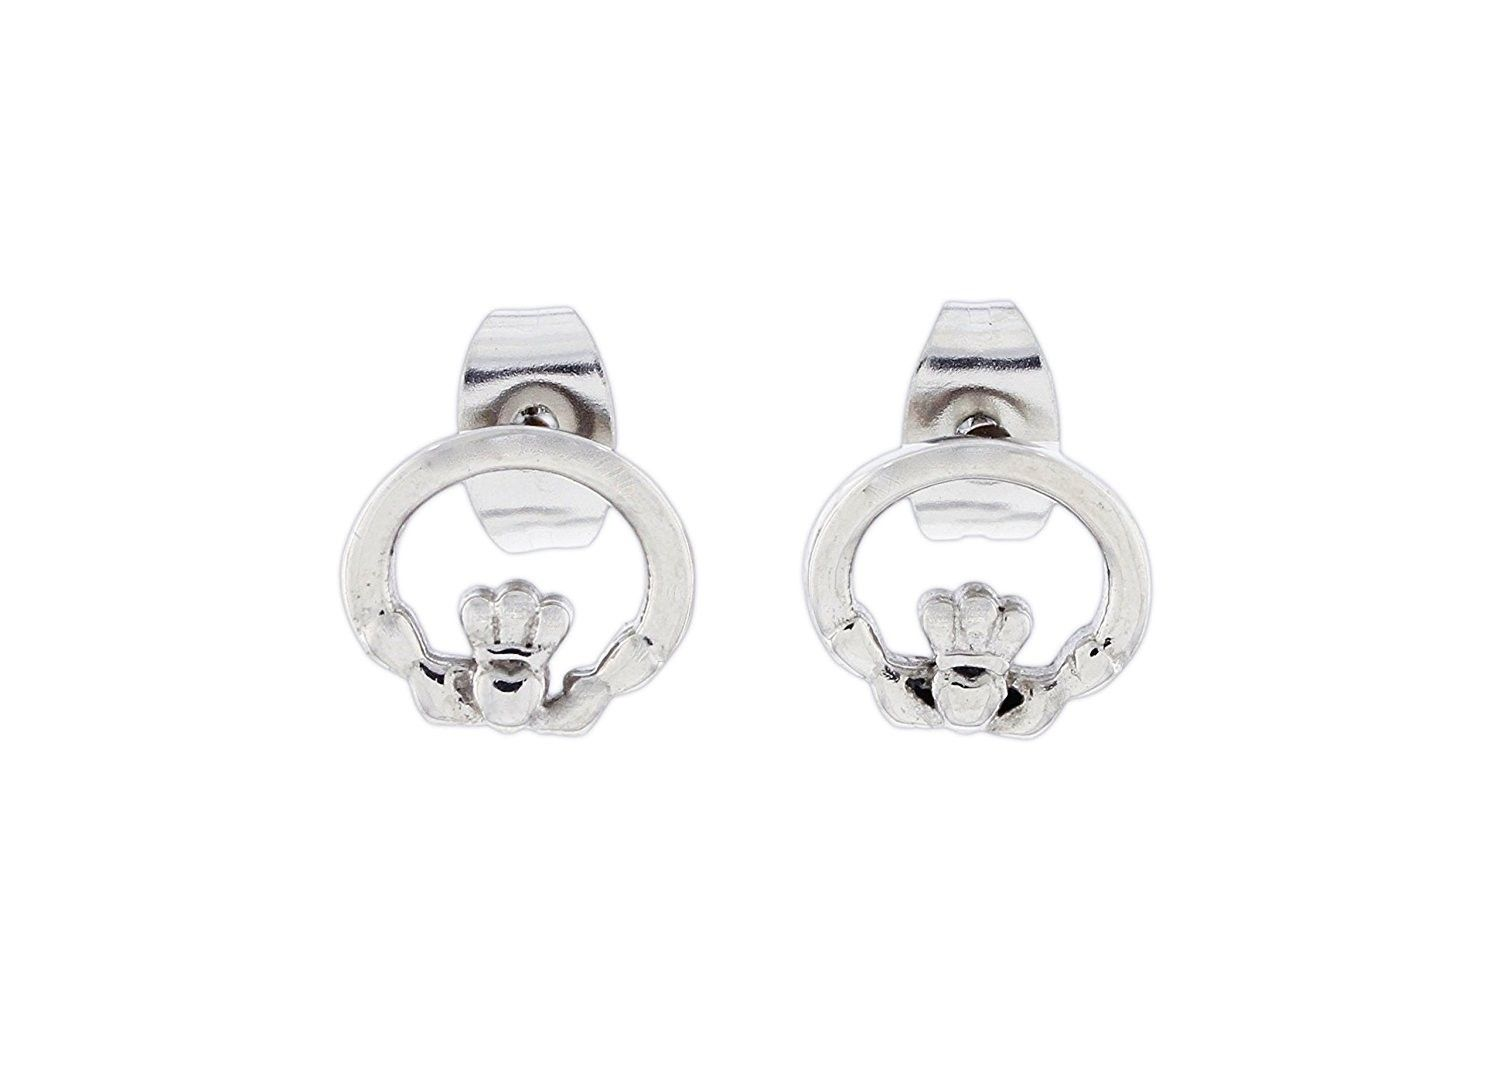 33b6fed3f47c3d Stainless Steel Claddagh Post Earrings - CJ1803EGSZQ - Earrings, Stud # Earrings #Studearring #